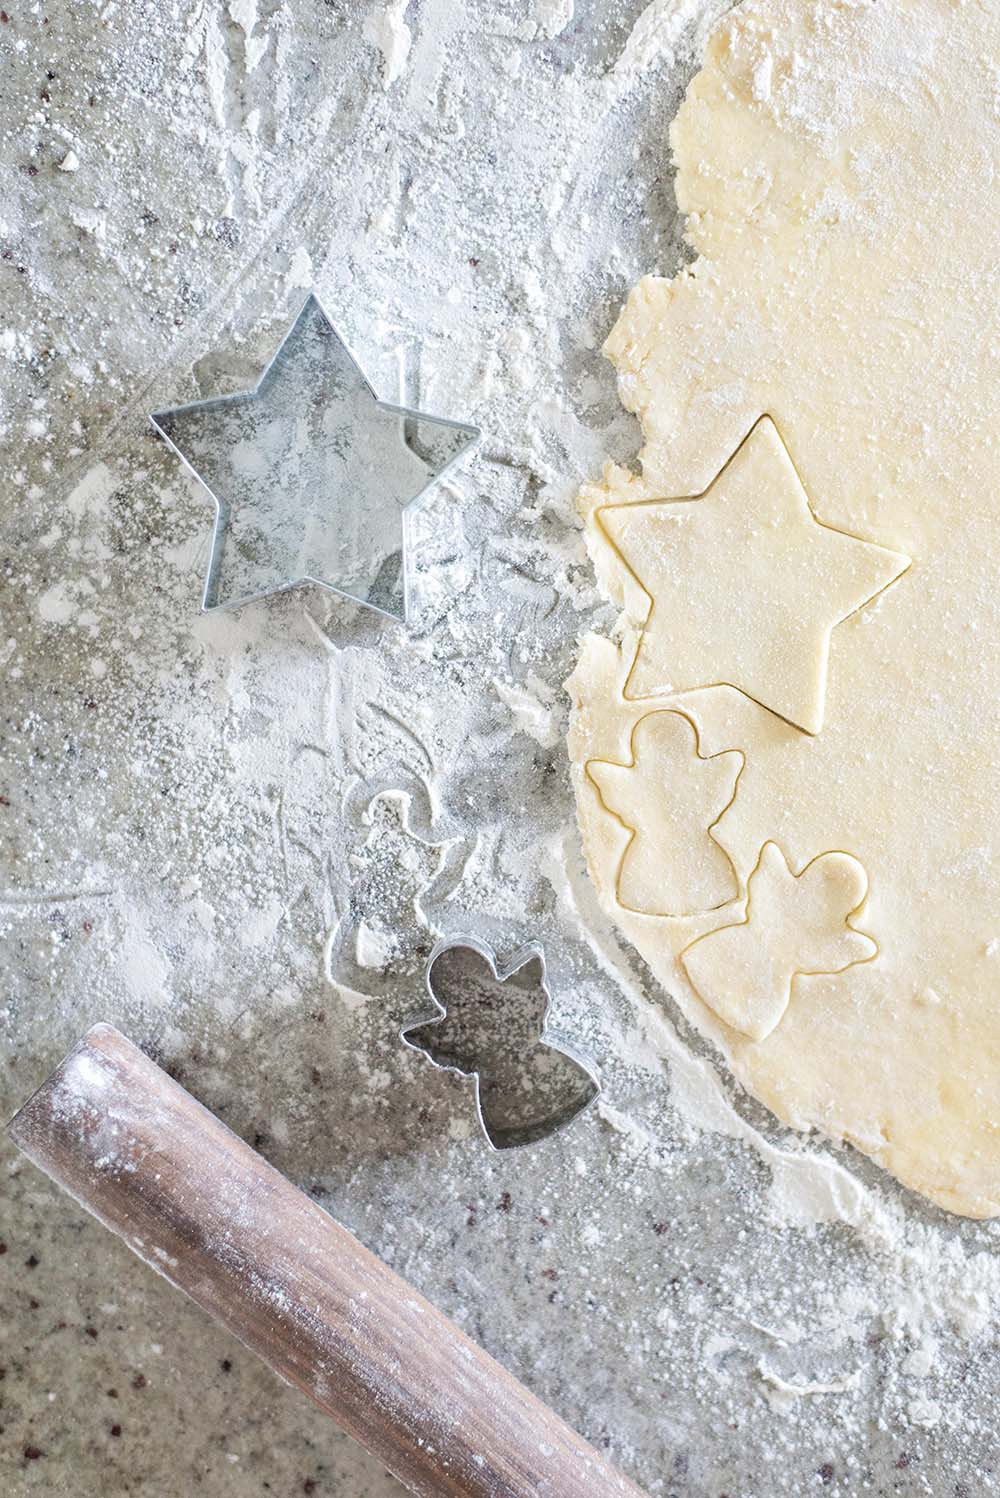 Freshly rolled out pie dough being cut into shapes with cookie cutters.